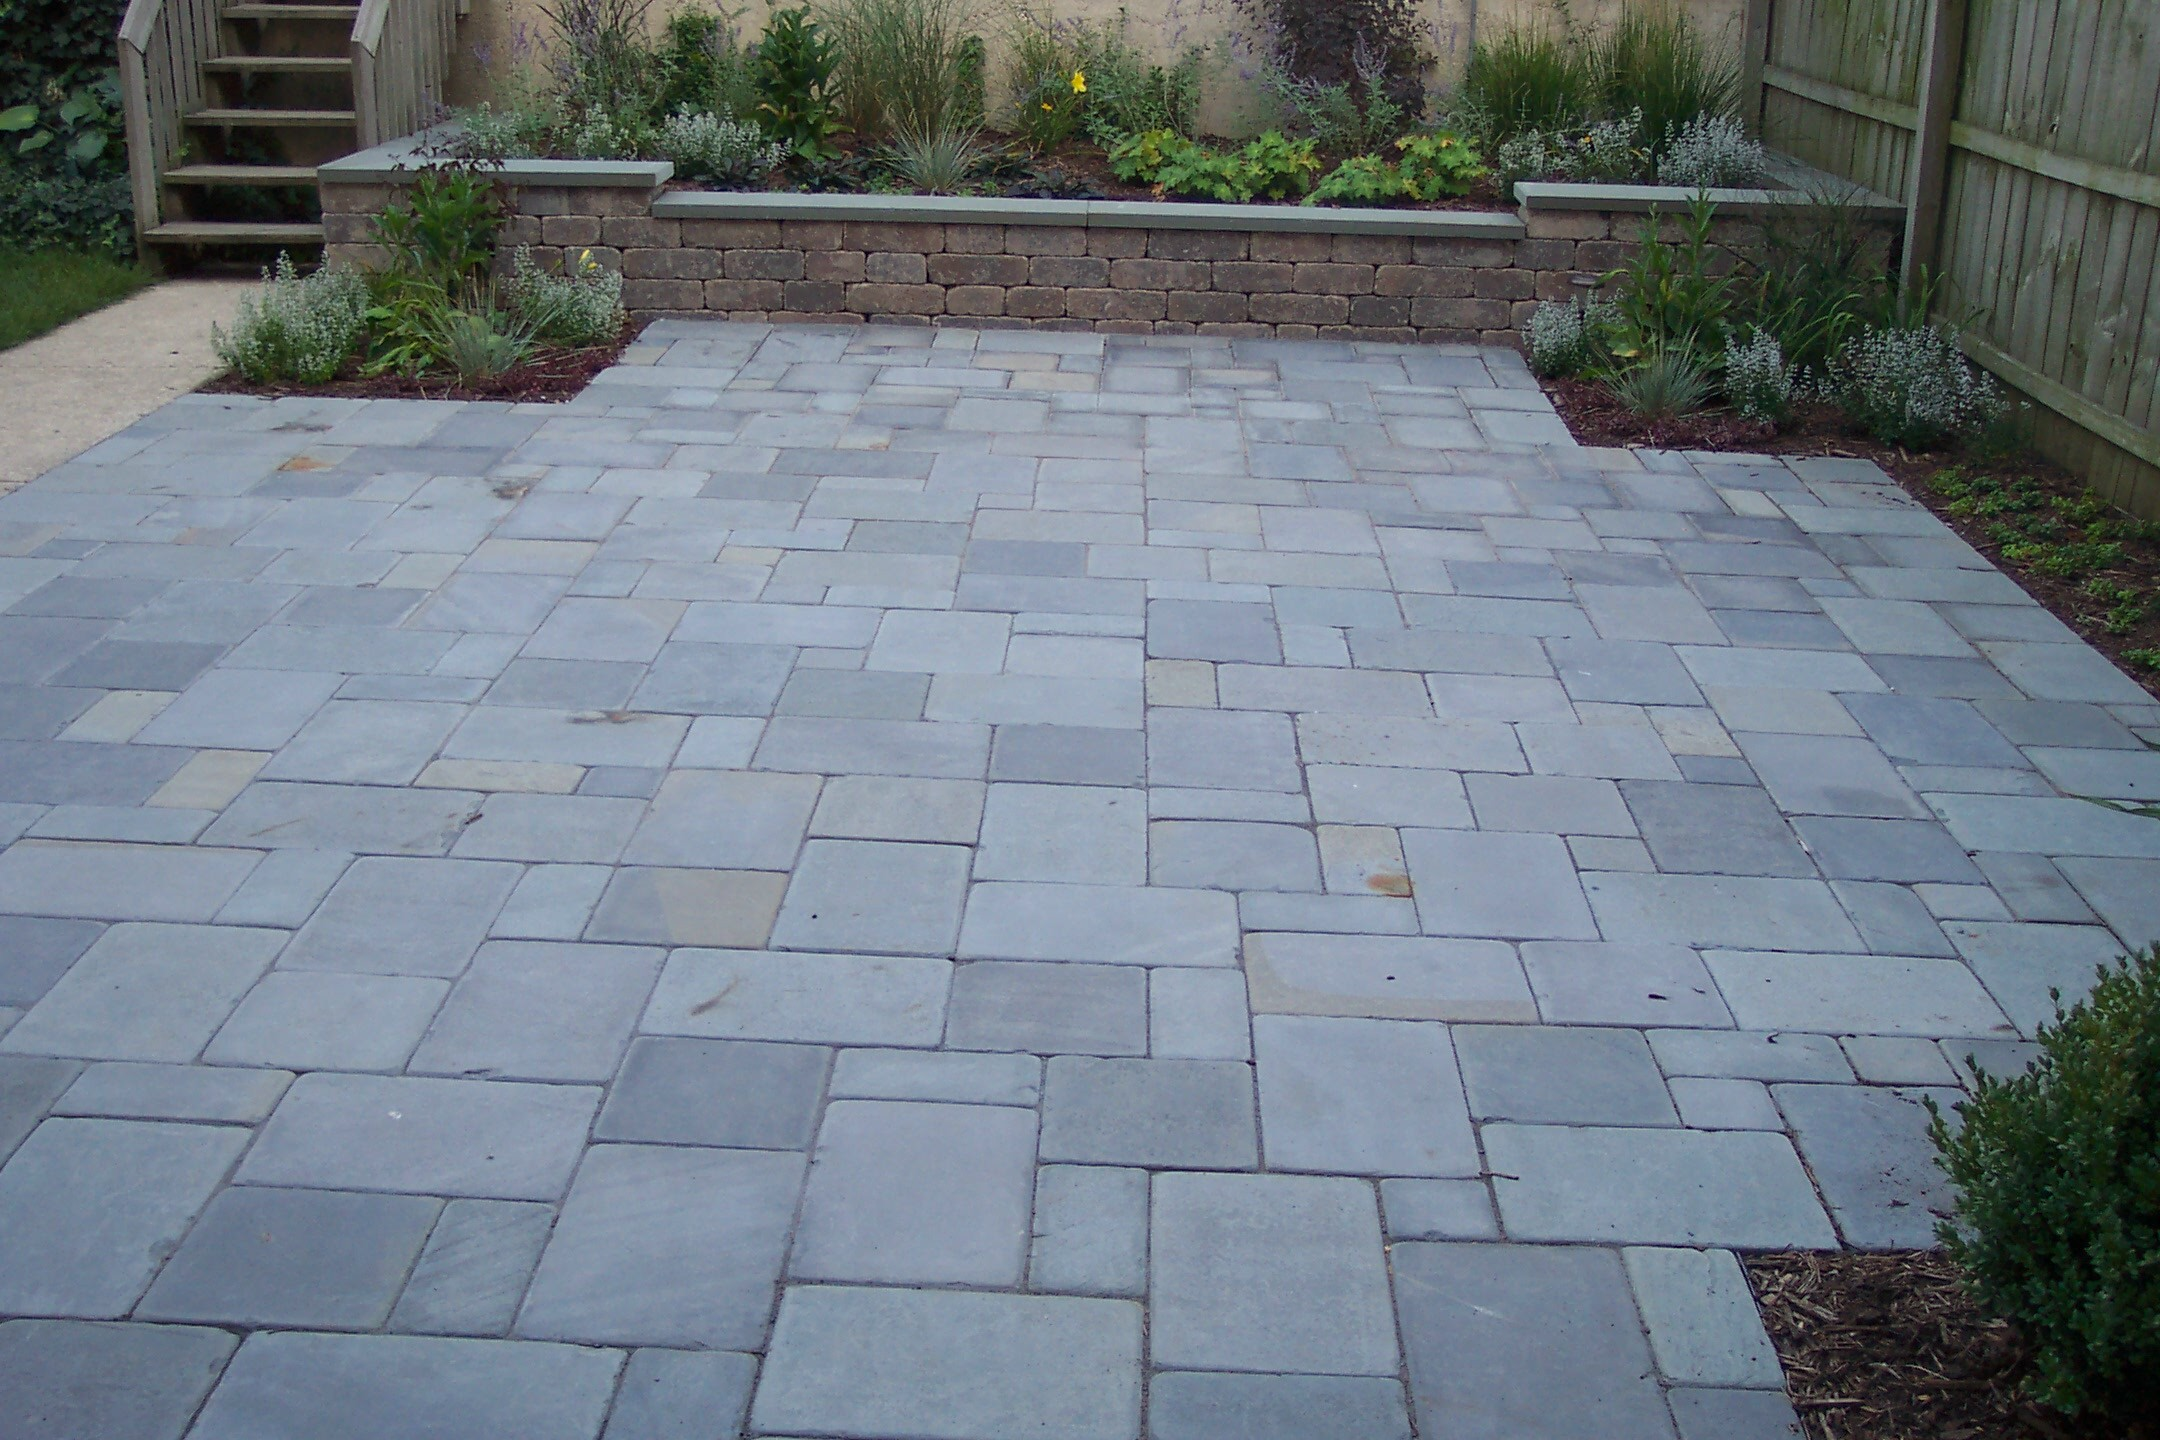 Beach house stones patios london stonework country for Flagstone patio designs